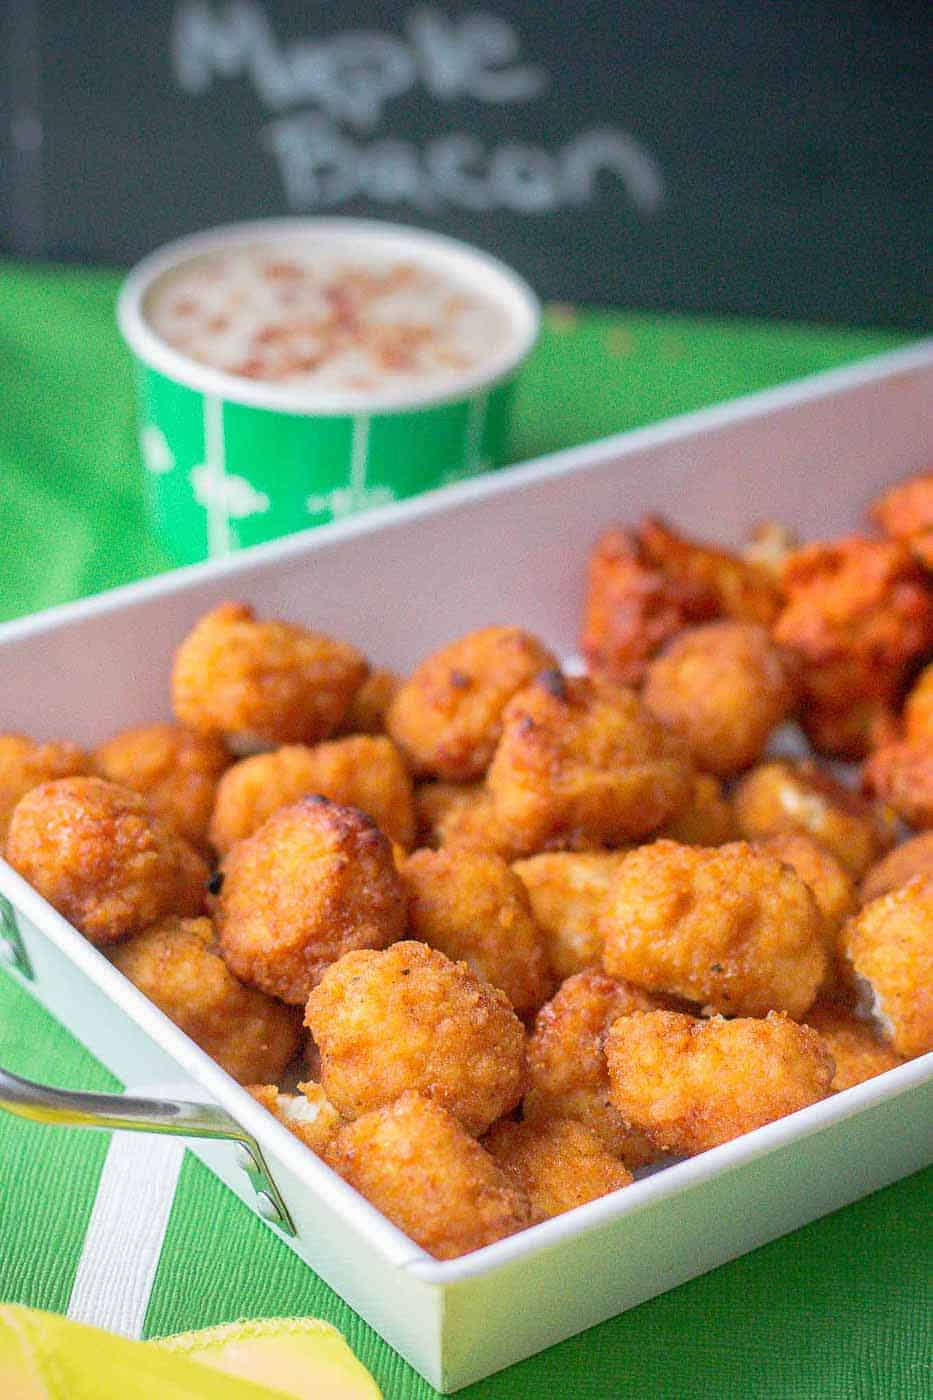 Homegating with Tyson® Any'tizers® and Tyson® Crispy Chicken Strips